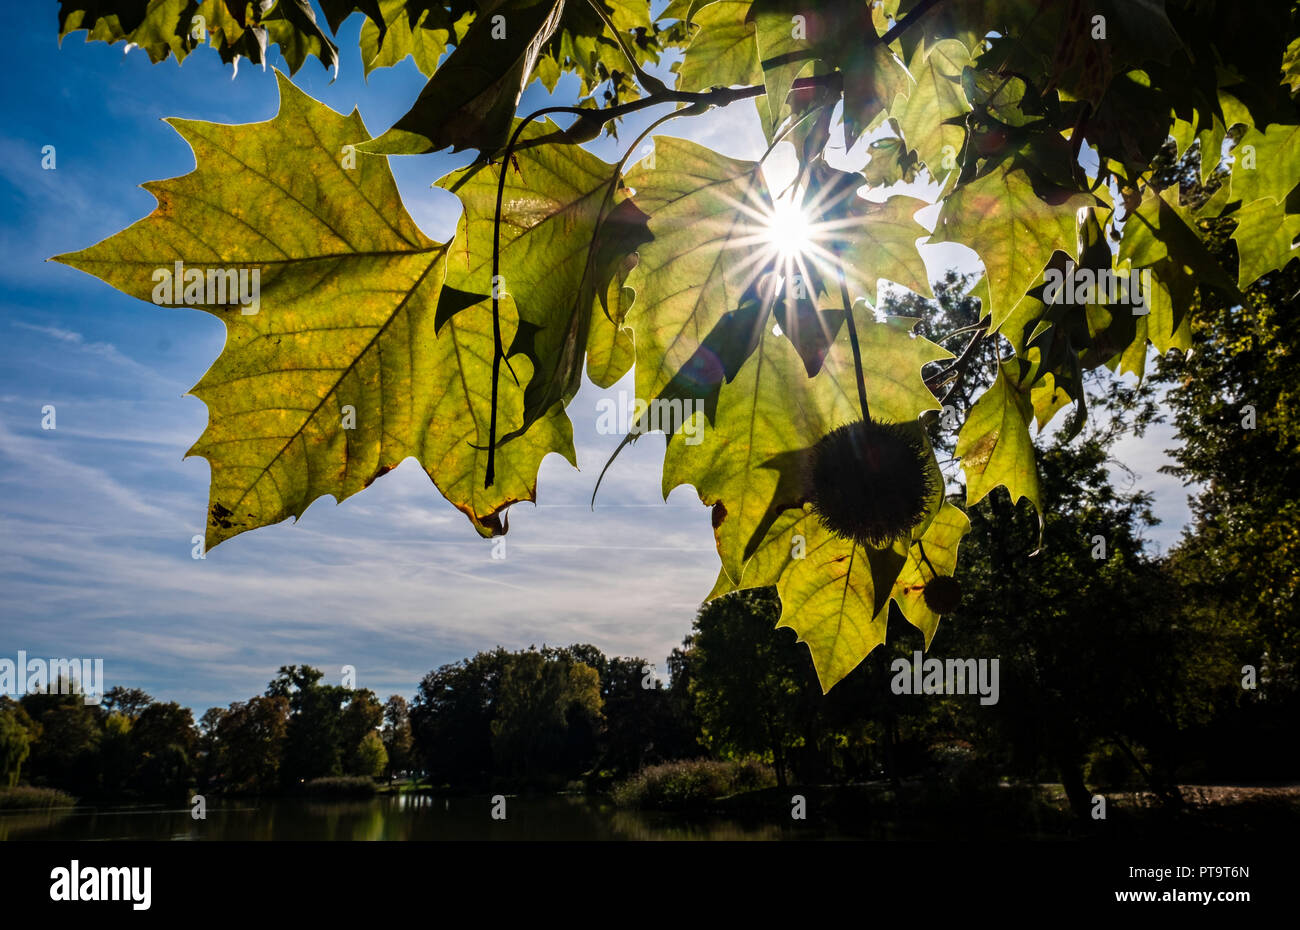 Hanover, Lower Saxony. 08th Oct, 2018. The sun glitters between the leaves of a chestnut tree at the Maschteich. Credit: Peter Steffen/dpa/Alamy Live News Stock Photo